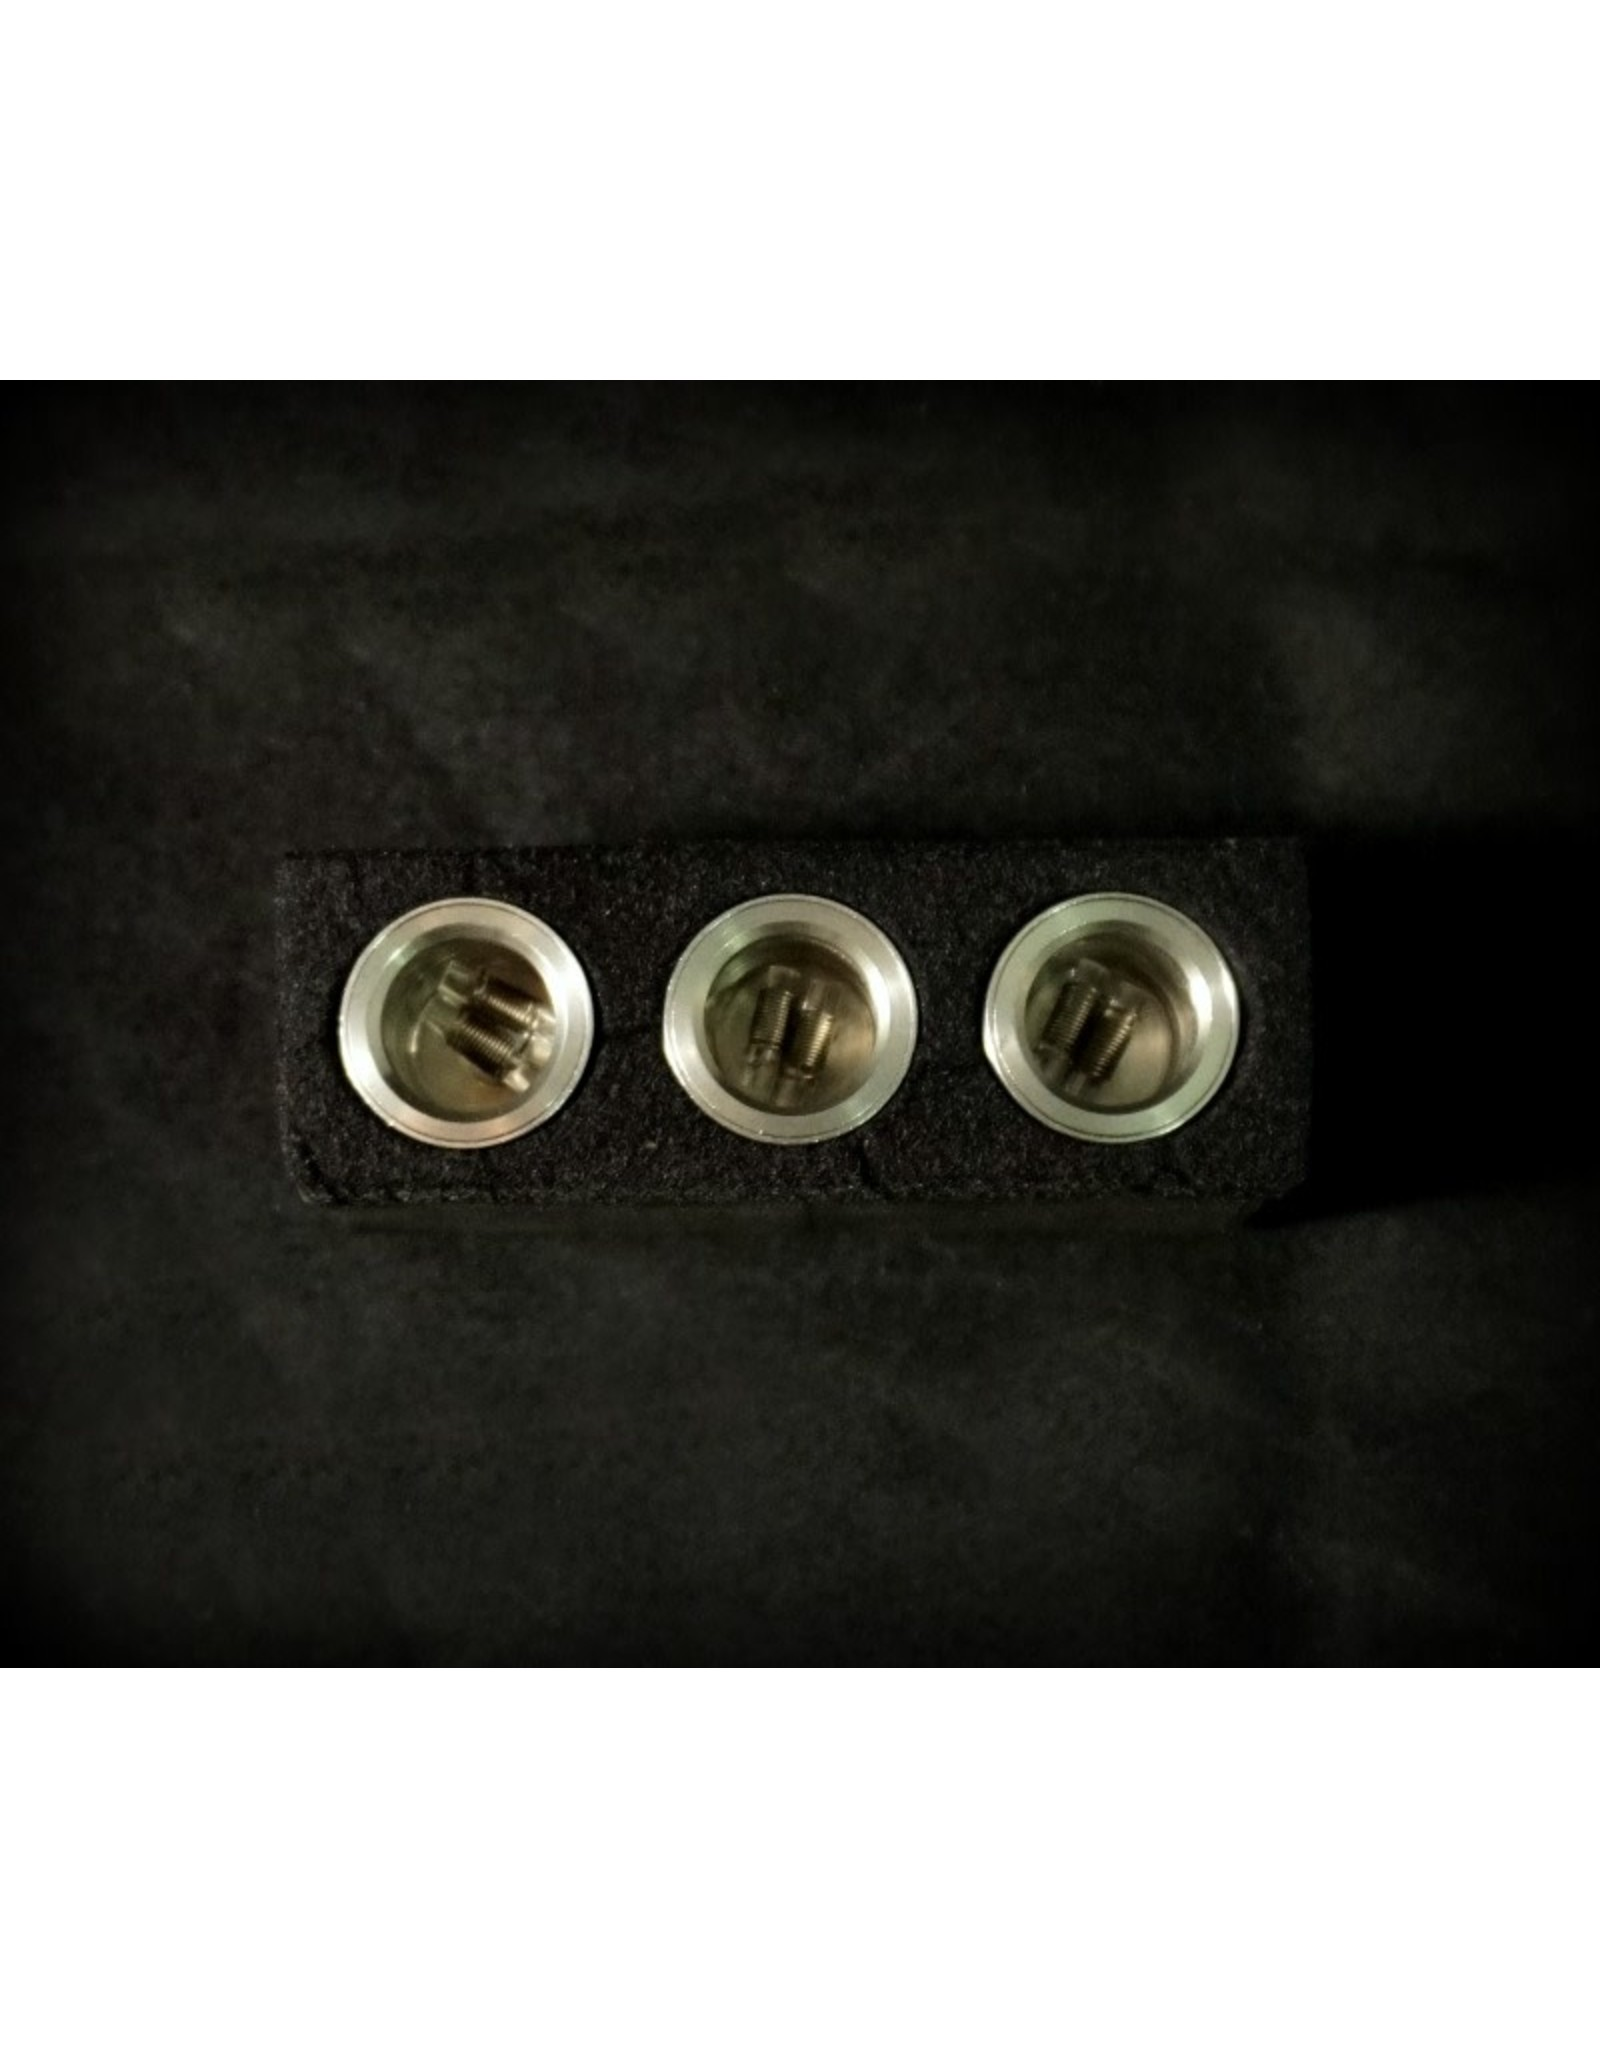 Source Orb XL Double Coil Atomizers 3pk